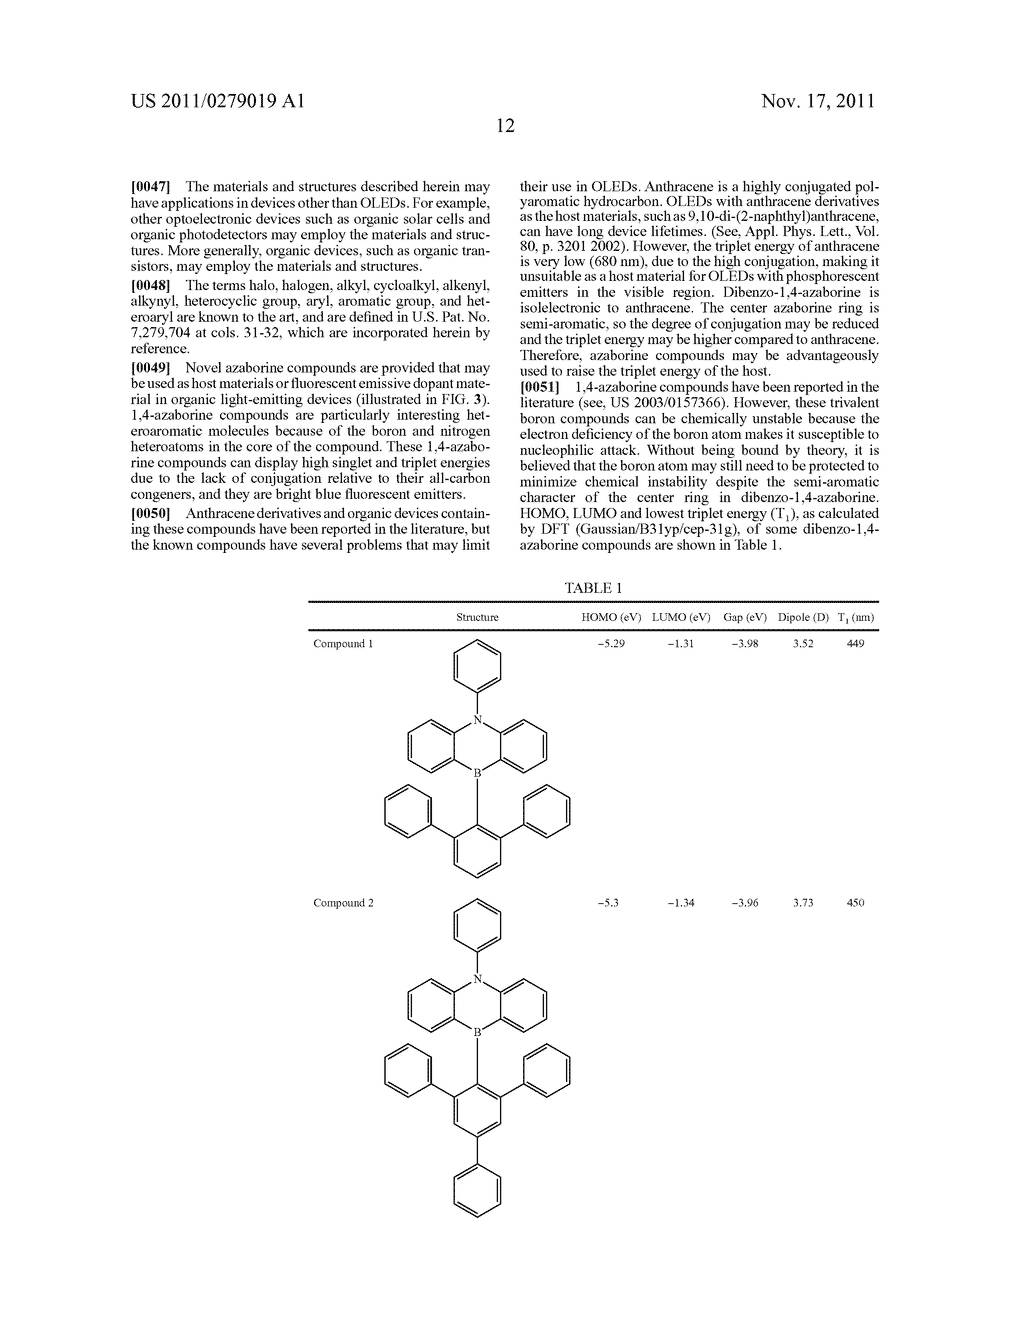 AZABORININE COMPOUNDS AS HOST MATERIALS AND DOPANTS FOR PHOLEDS - diagram, schematic, and image 19